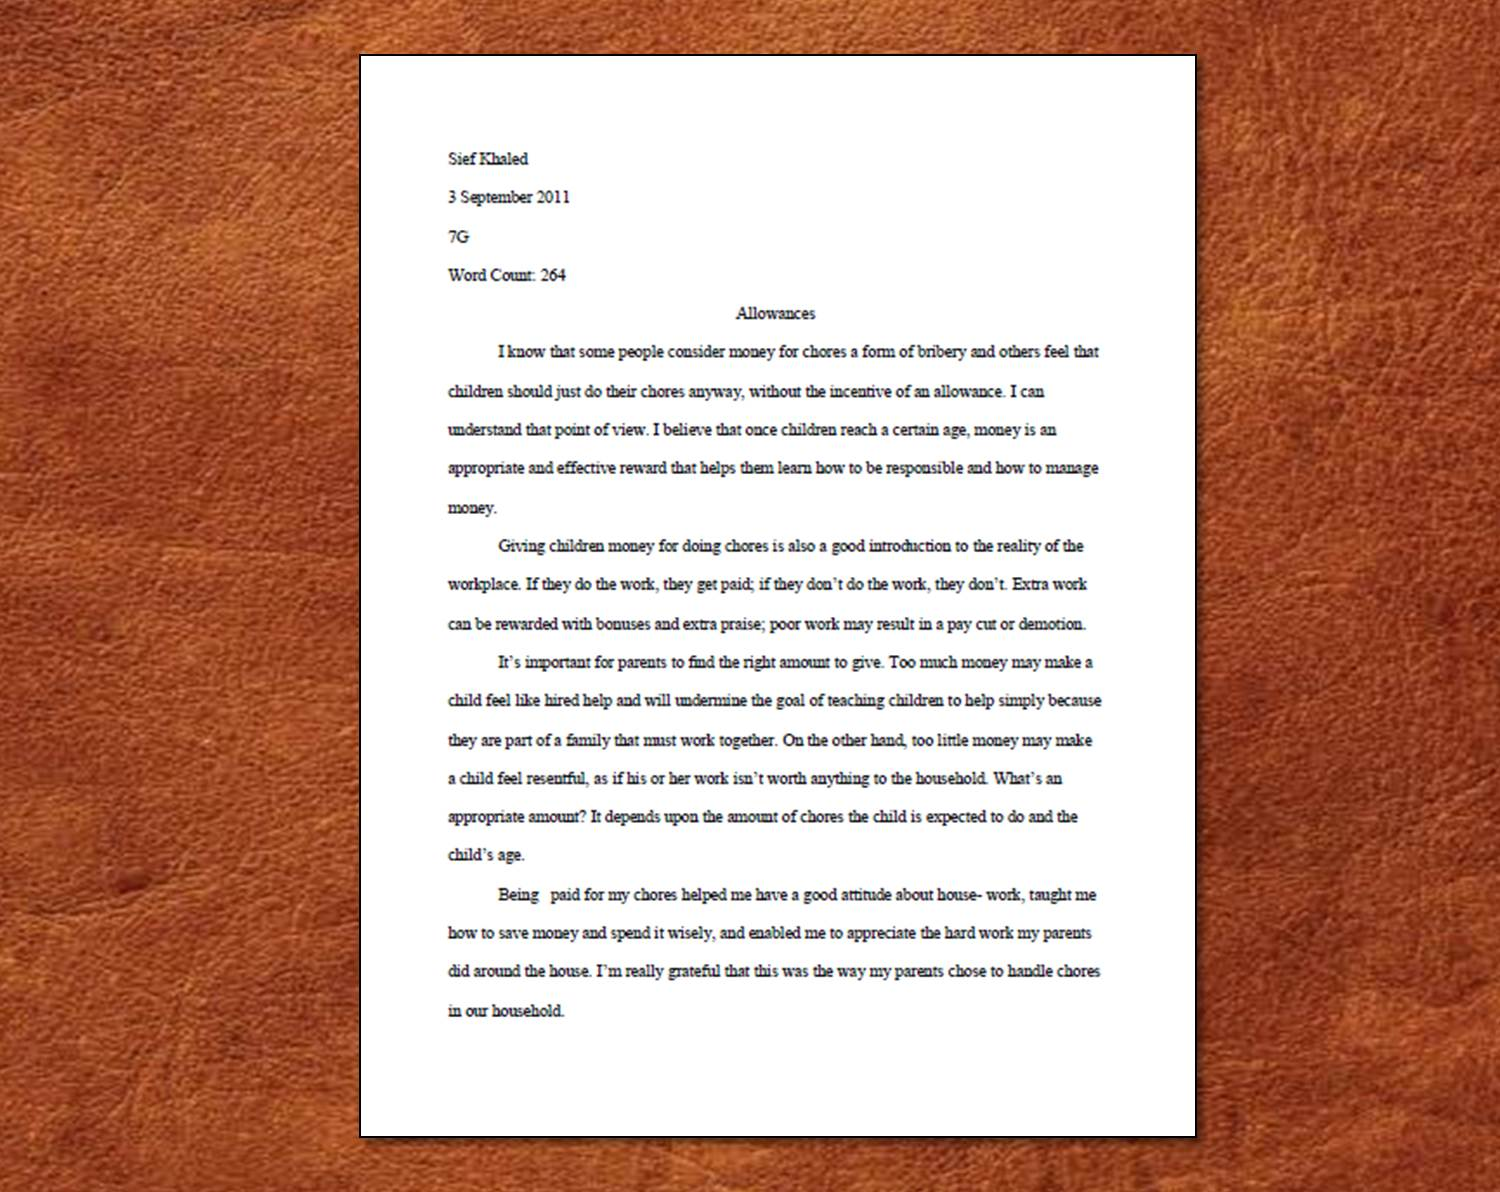 proper page layout for an essay Mla style essay formatting: margins, font, line spacing, header, info block, title, indentation, block quote, works cited for a transcript of this video, pl.